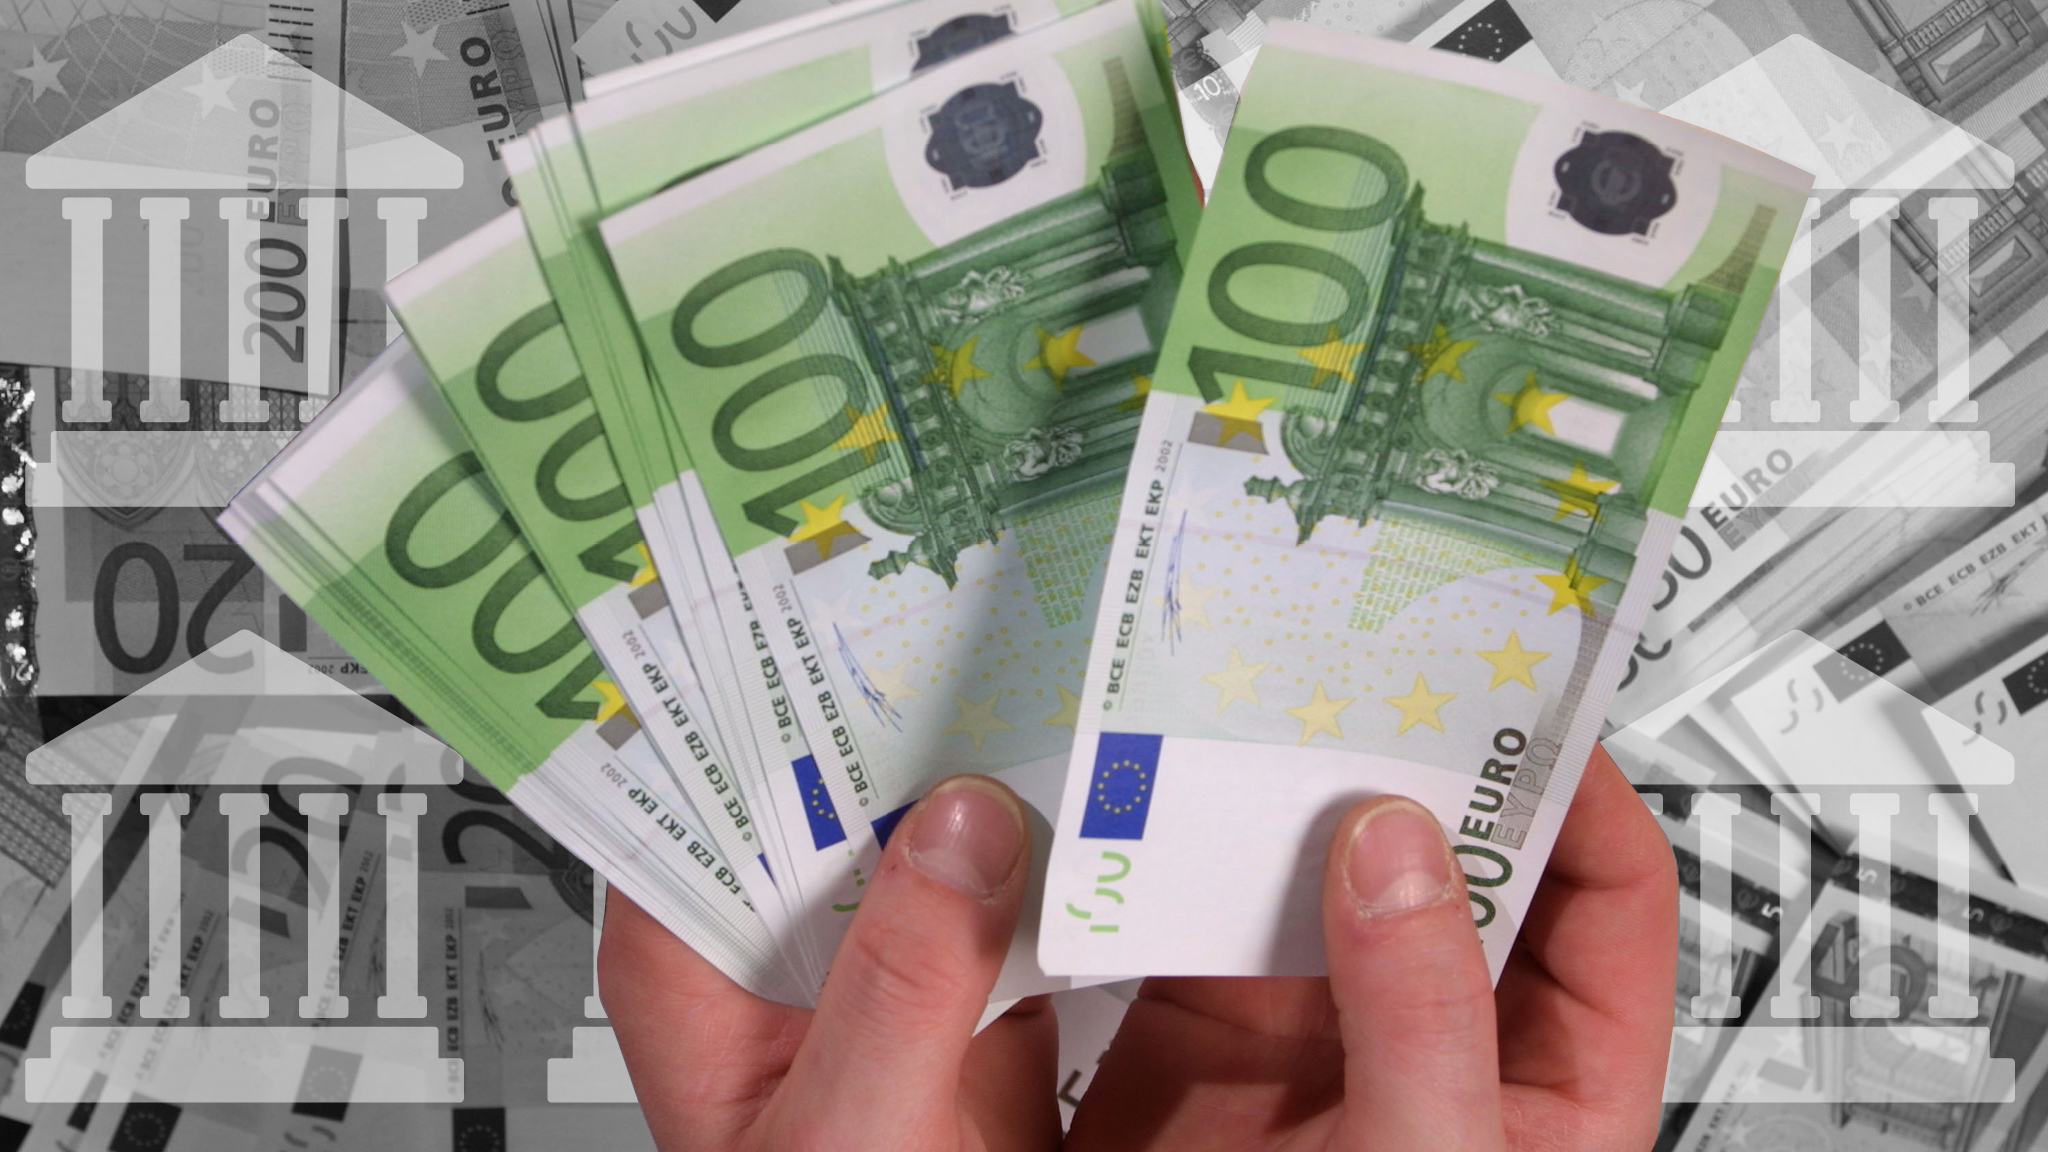 Europe's debt collectors face own loan concerns